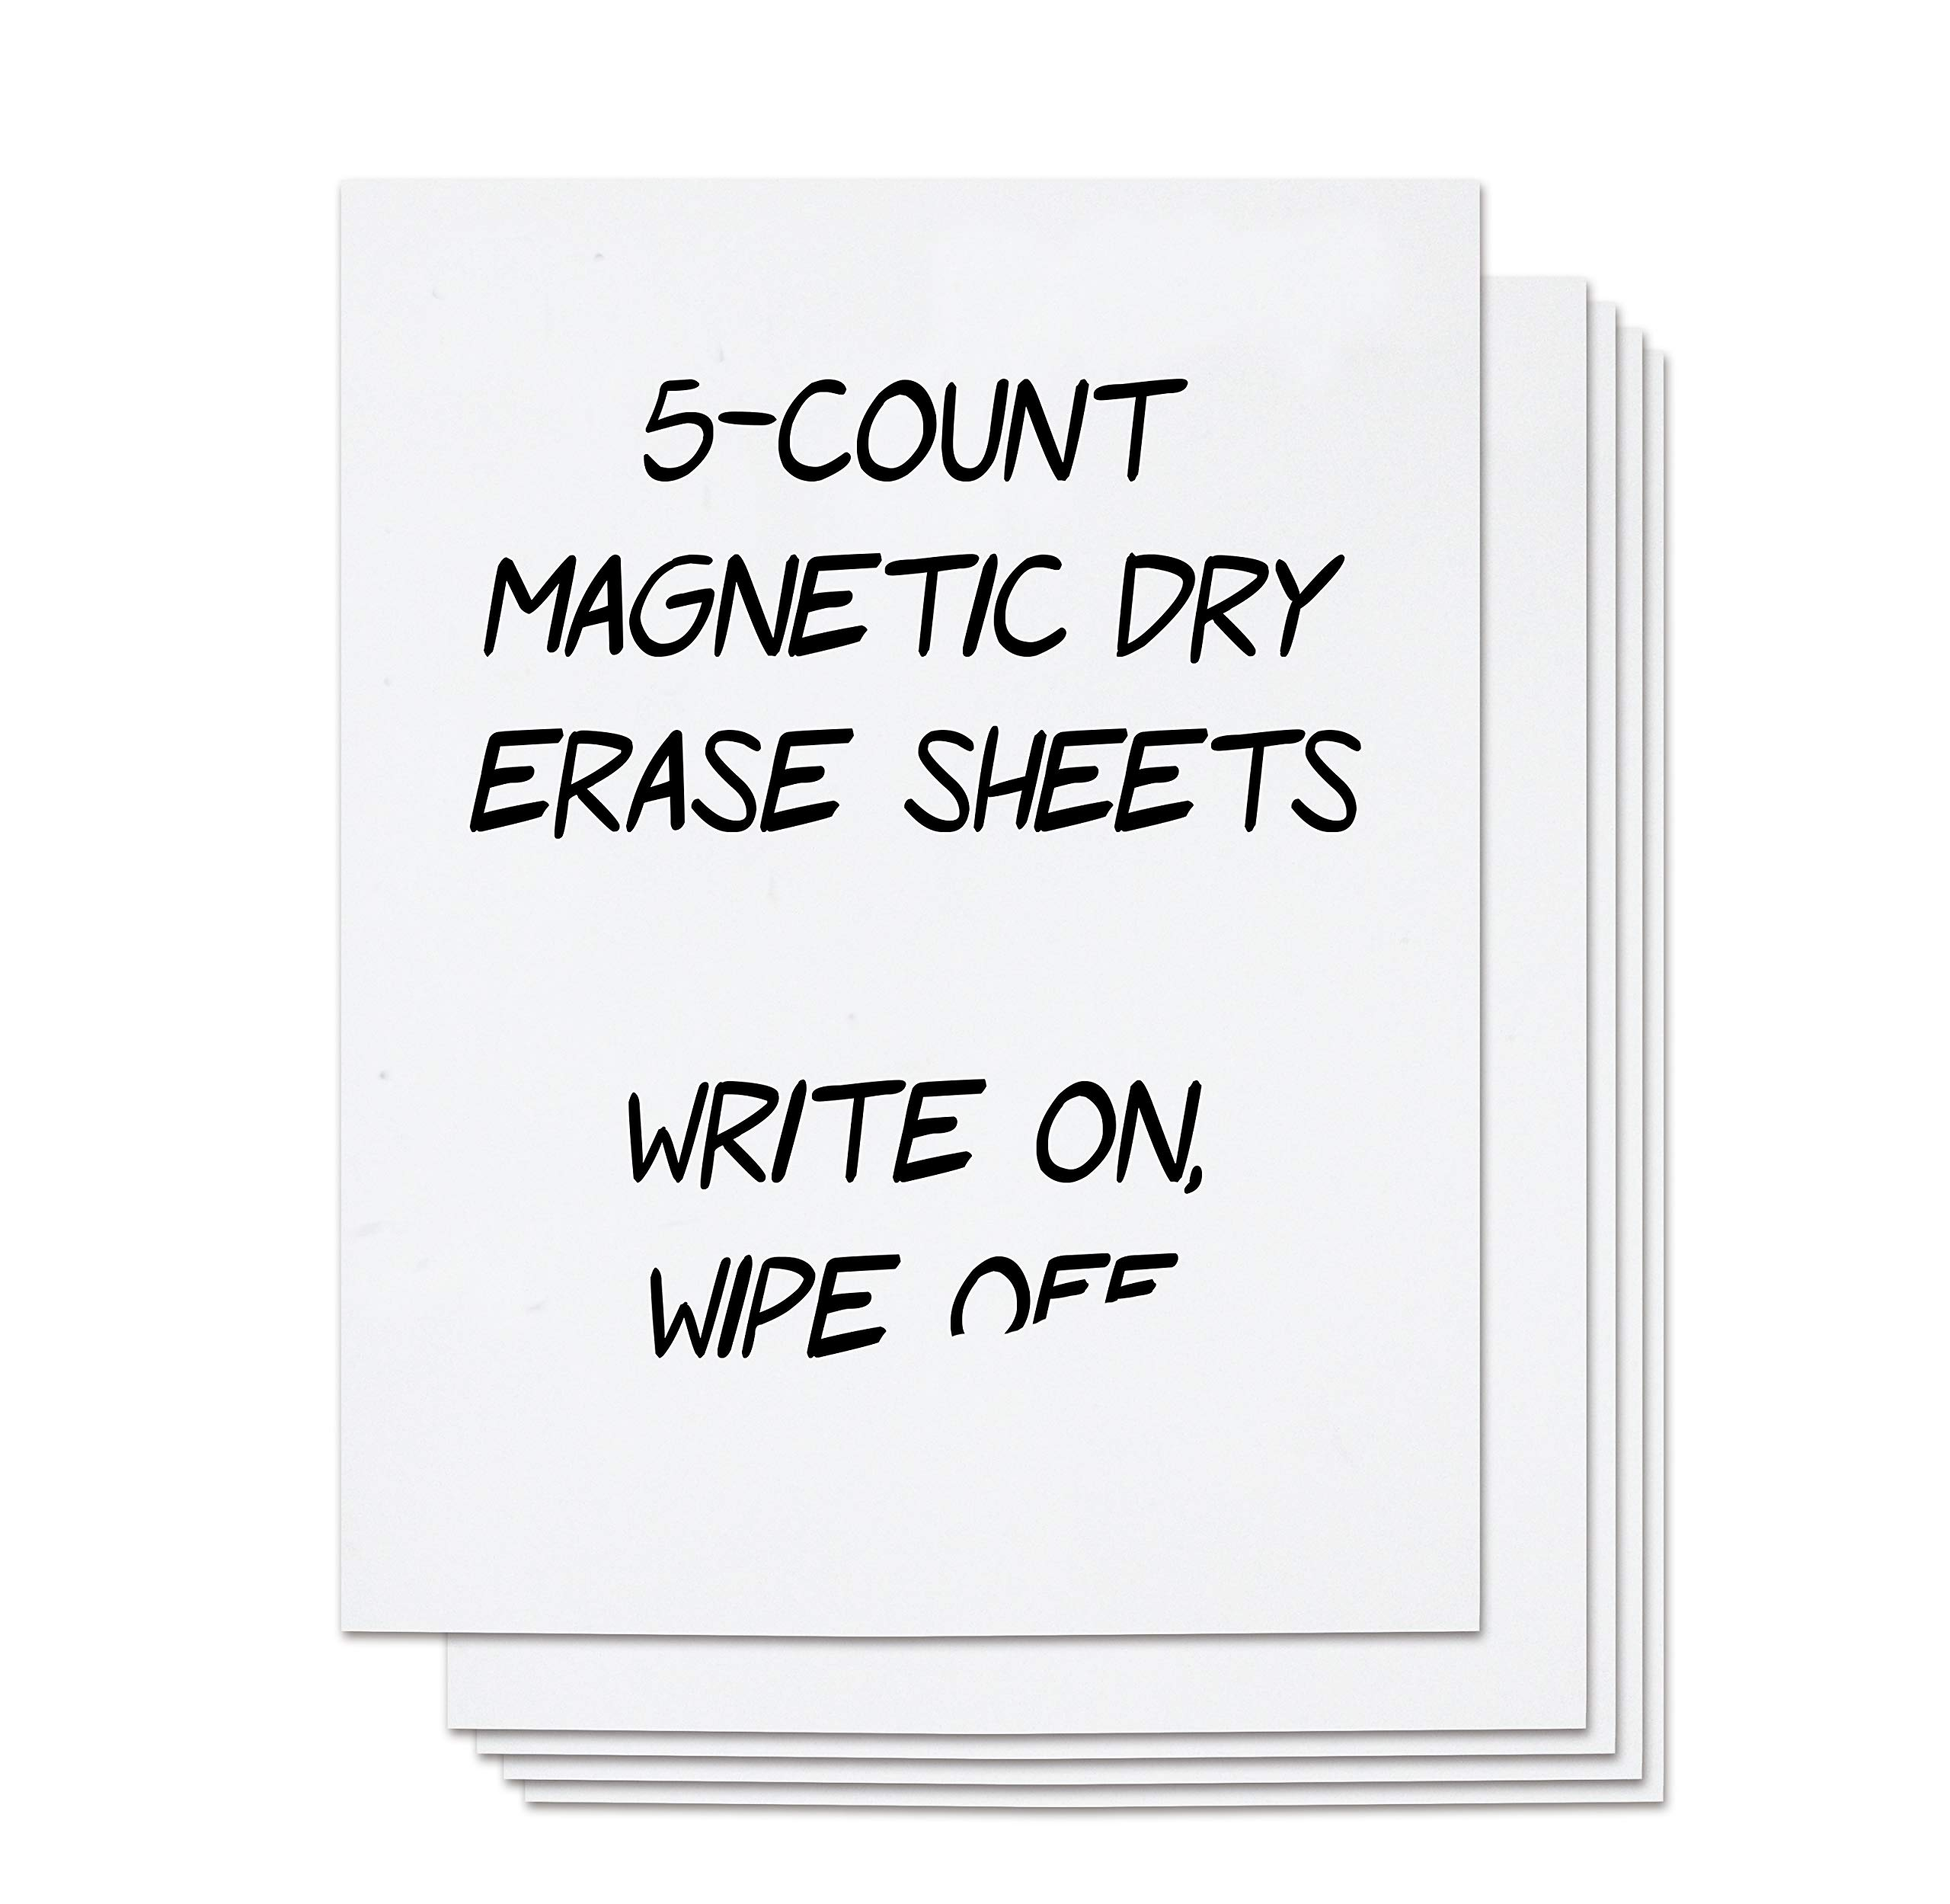 Magnetic Dry Erase Sheets - 5 Count White Magnet Sheets, 9 x 12 inches